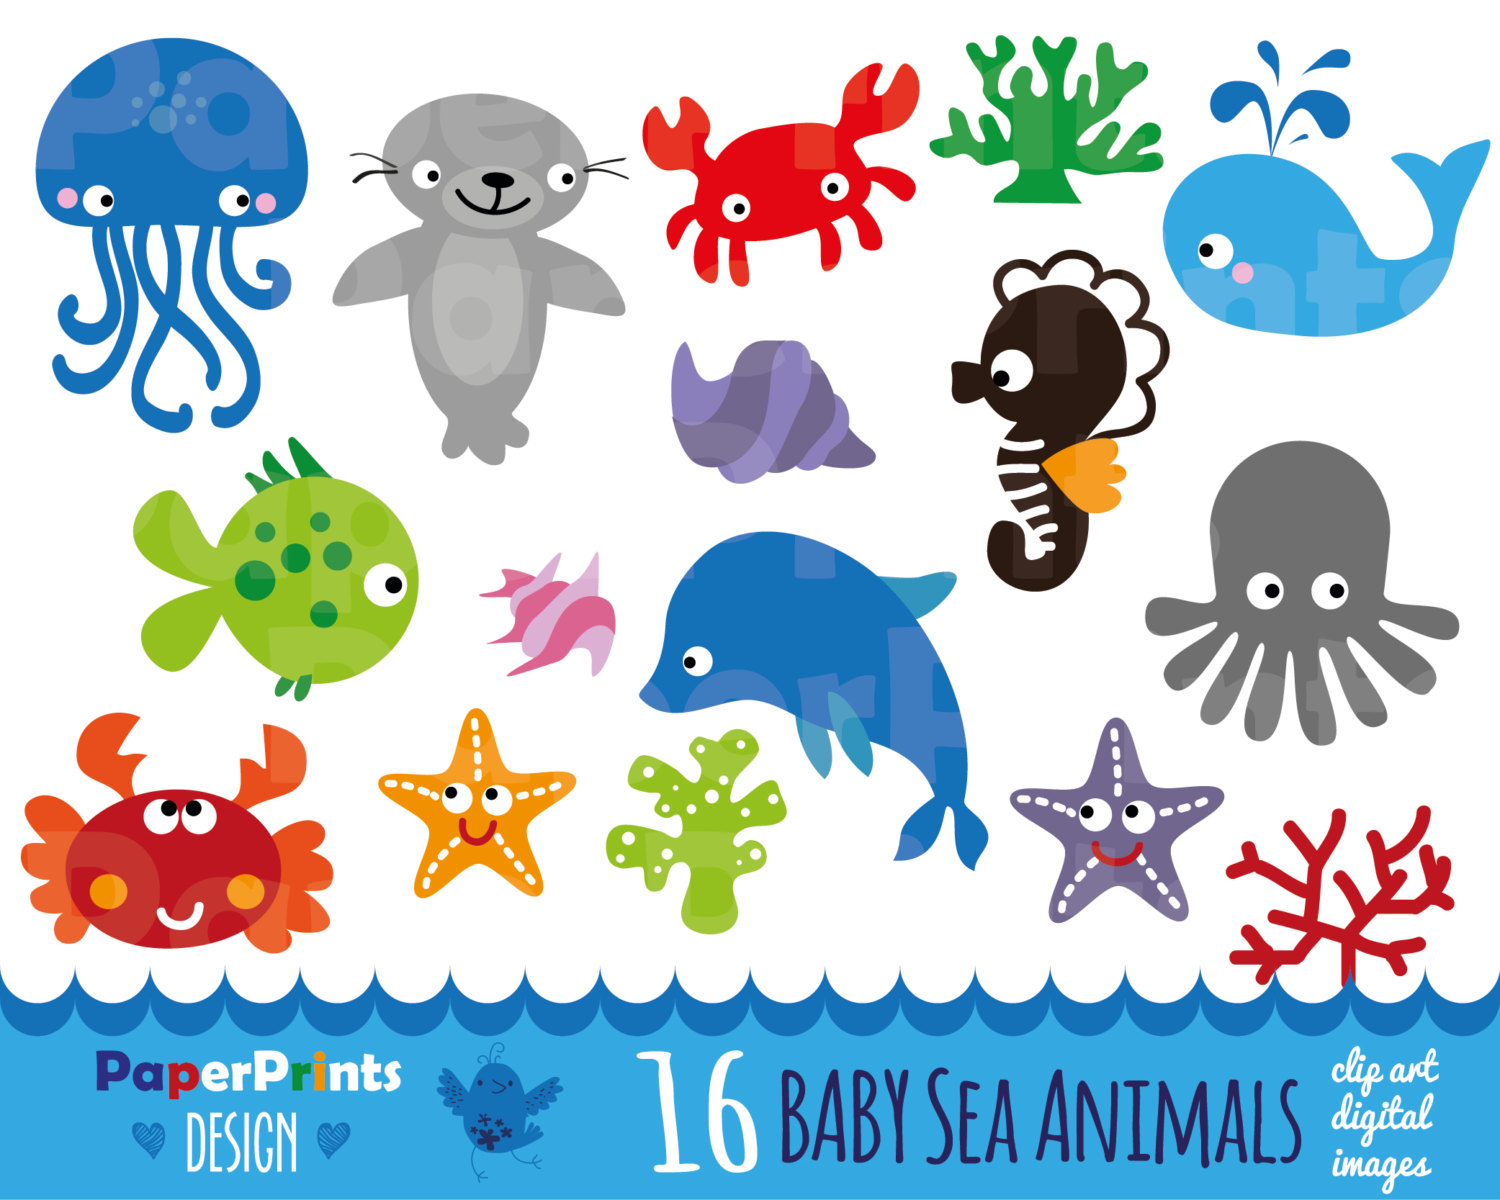 1000+ images about List of sea creatures on Pinterest.